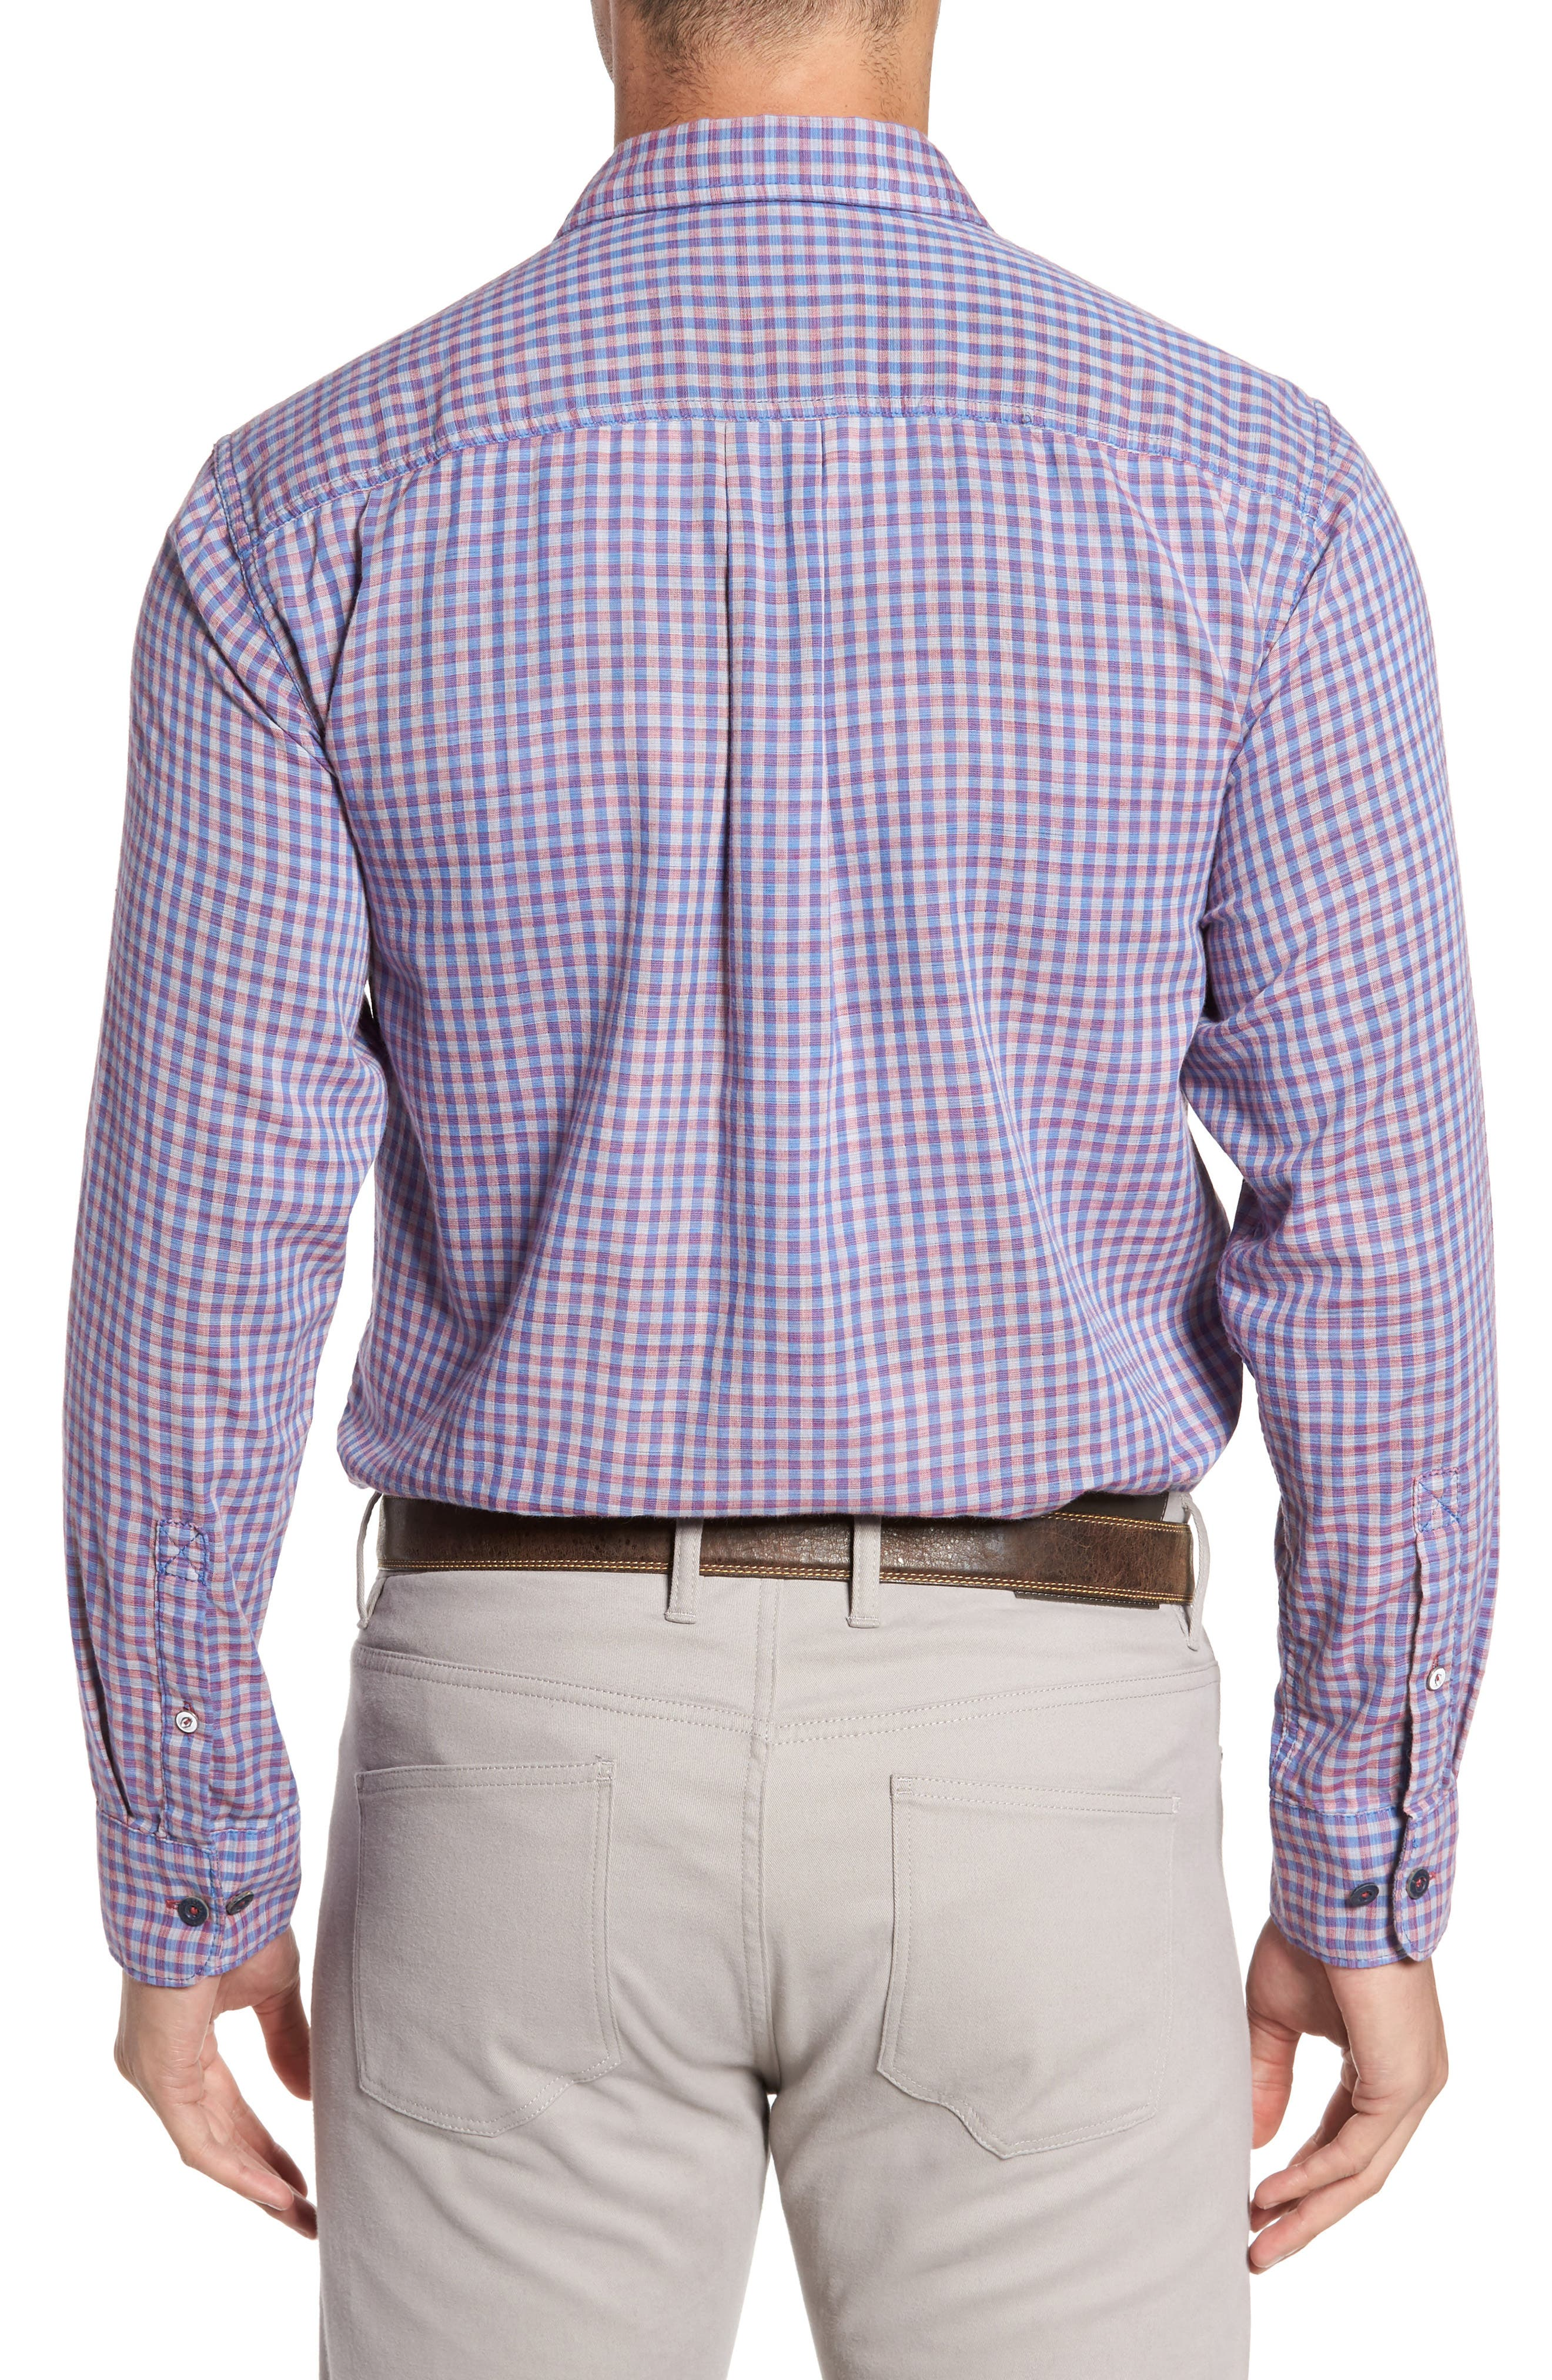 Dual Lux Gingham Sport Shirt,                             Alternate thumbnail 2, color,